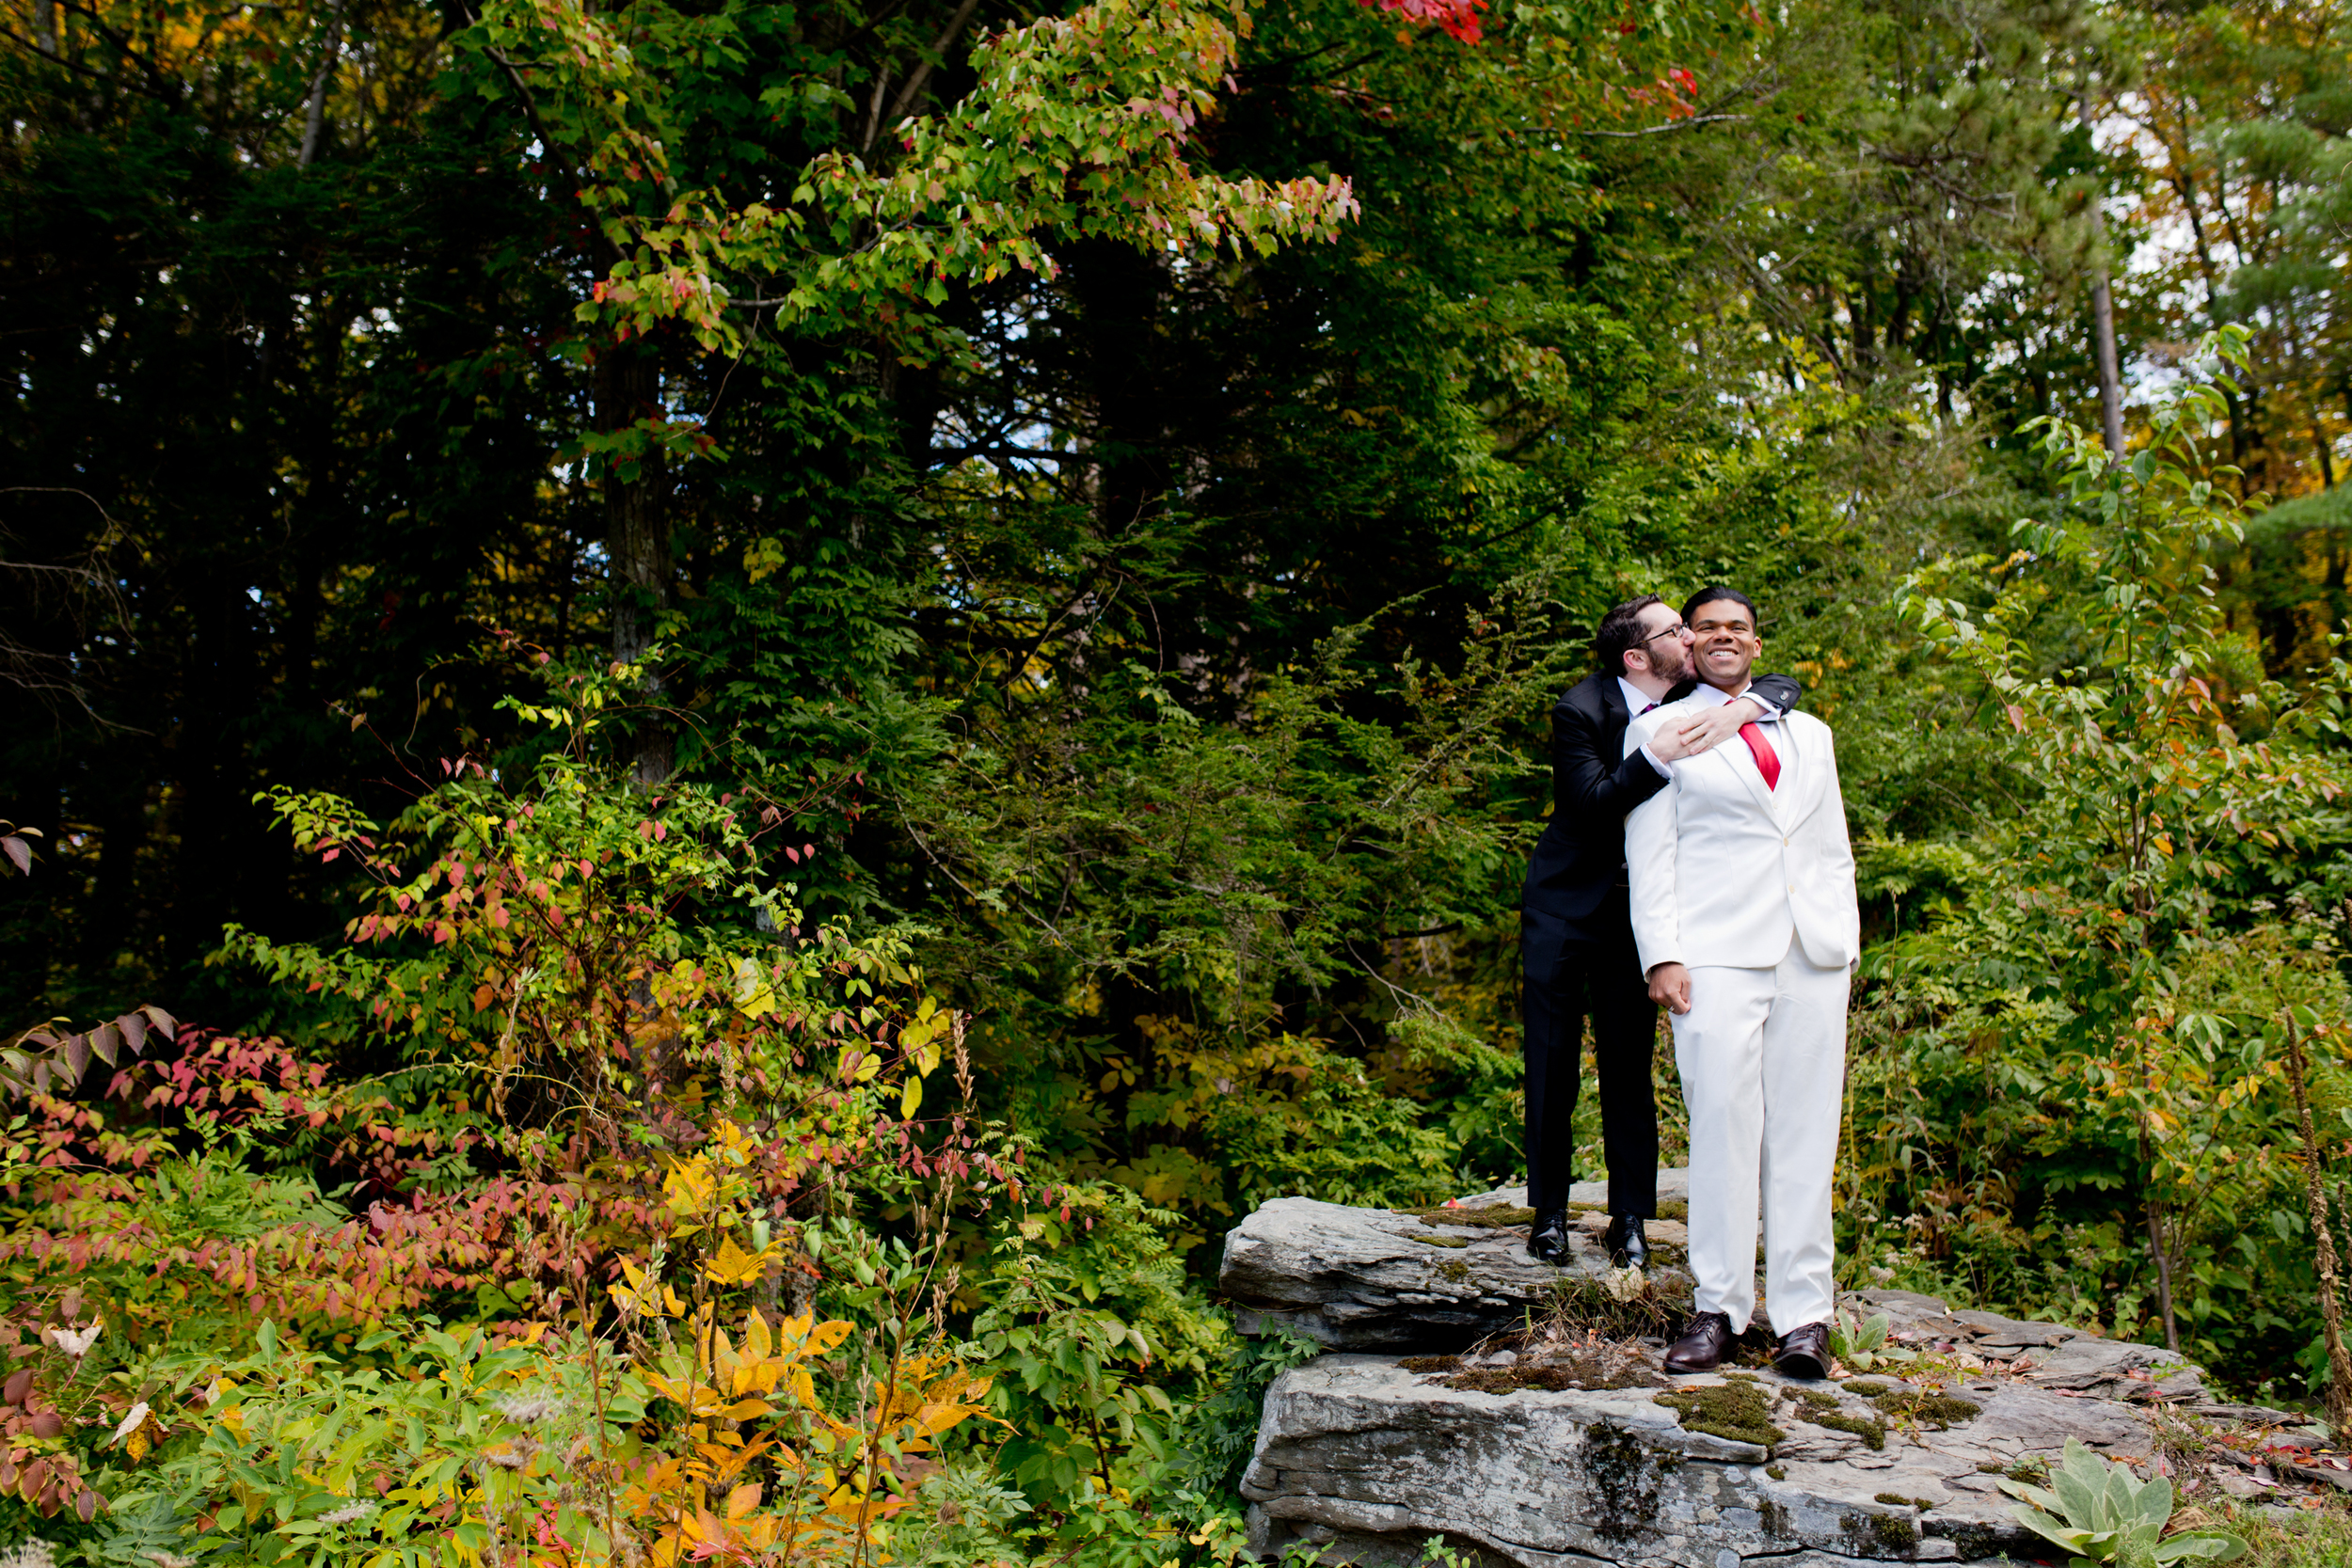 041_CarlyGaebe_SteadfastStudio_WeddingPhotography_Fall_Autumn_Foliage_UpstateNewYork_Gay_Biracial_OnteoraMountainHouse_HudsonValley_Grooms_Rustic.jpg